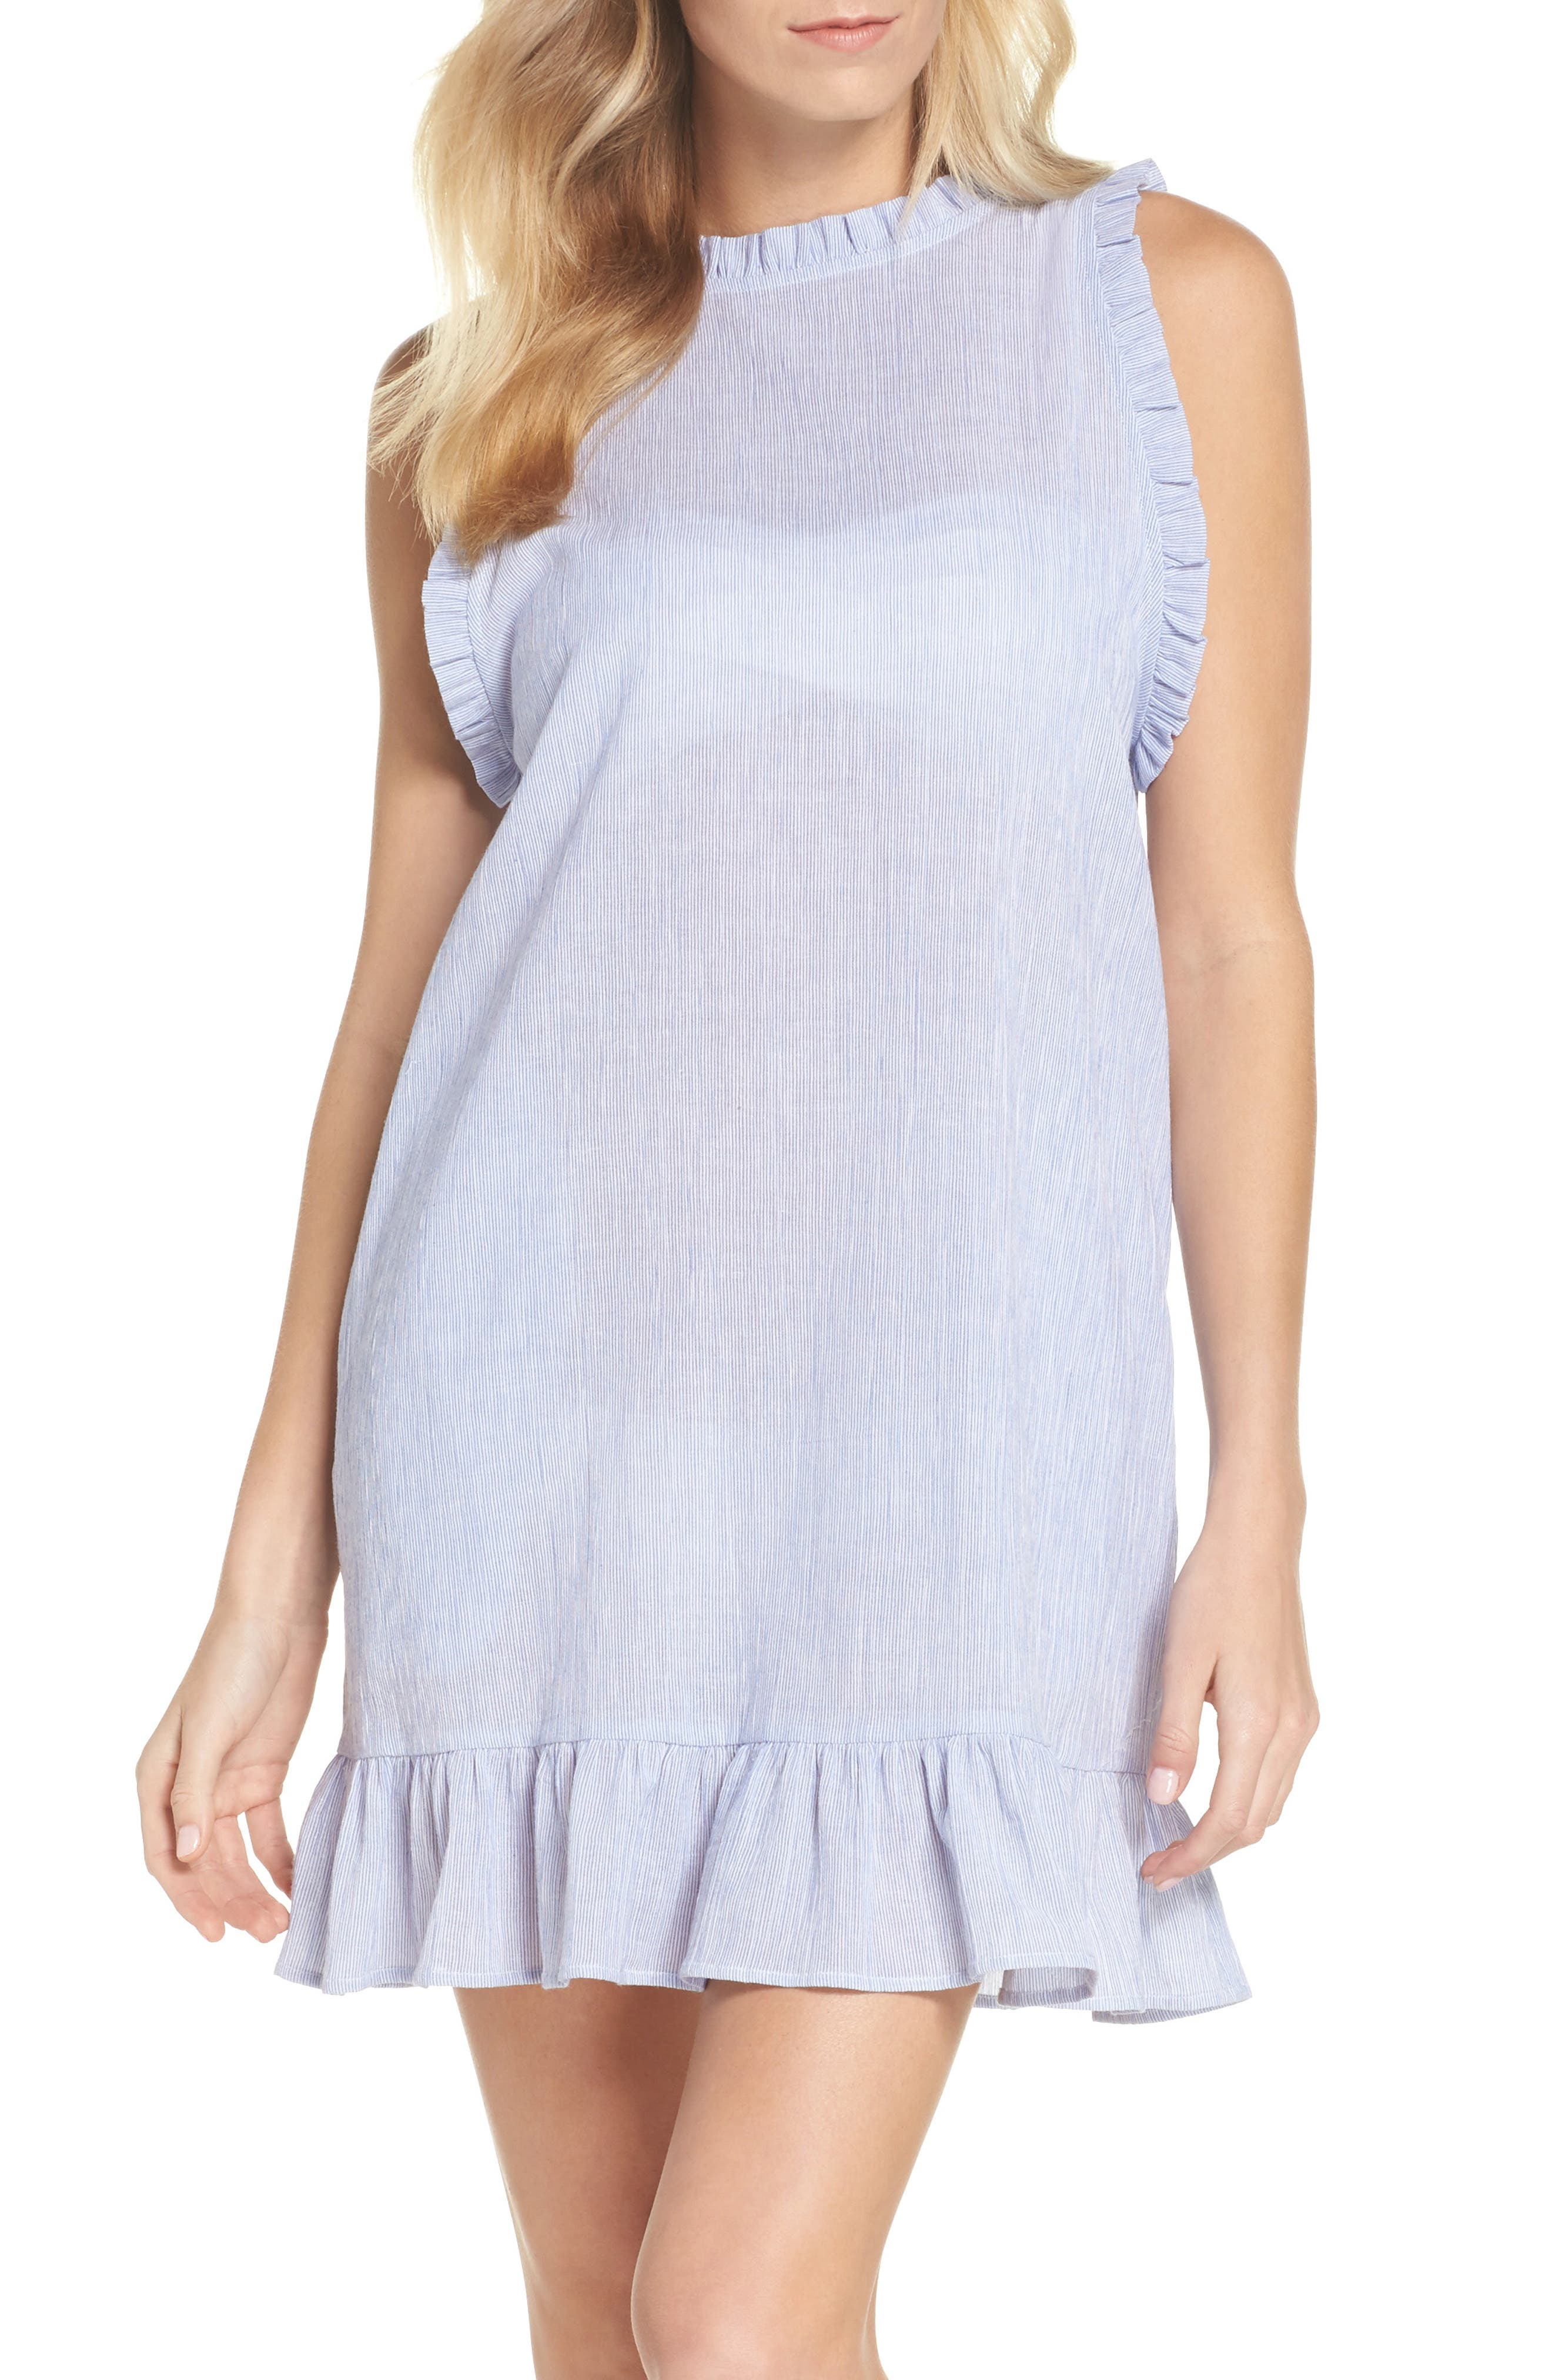 Heidi Cover-Up Dress,                         Main,                         color, 401